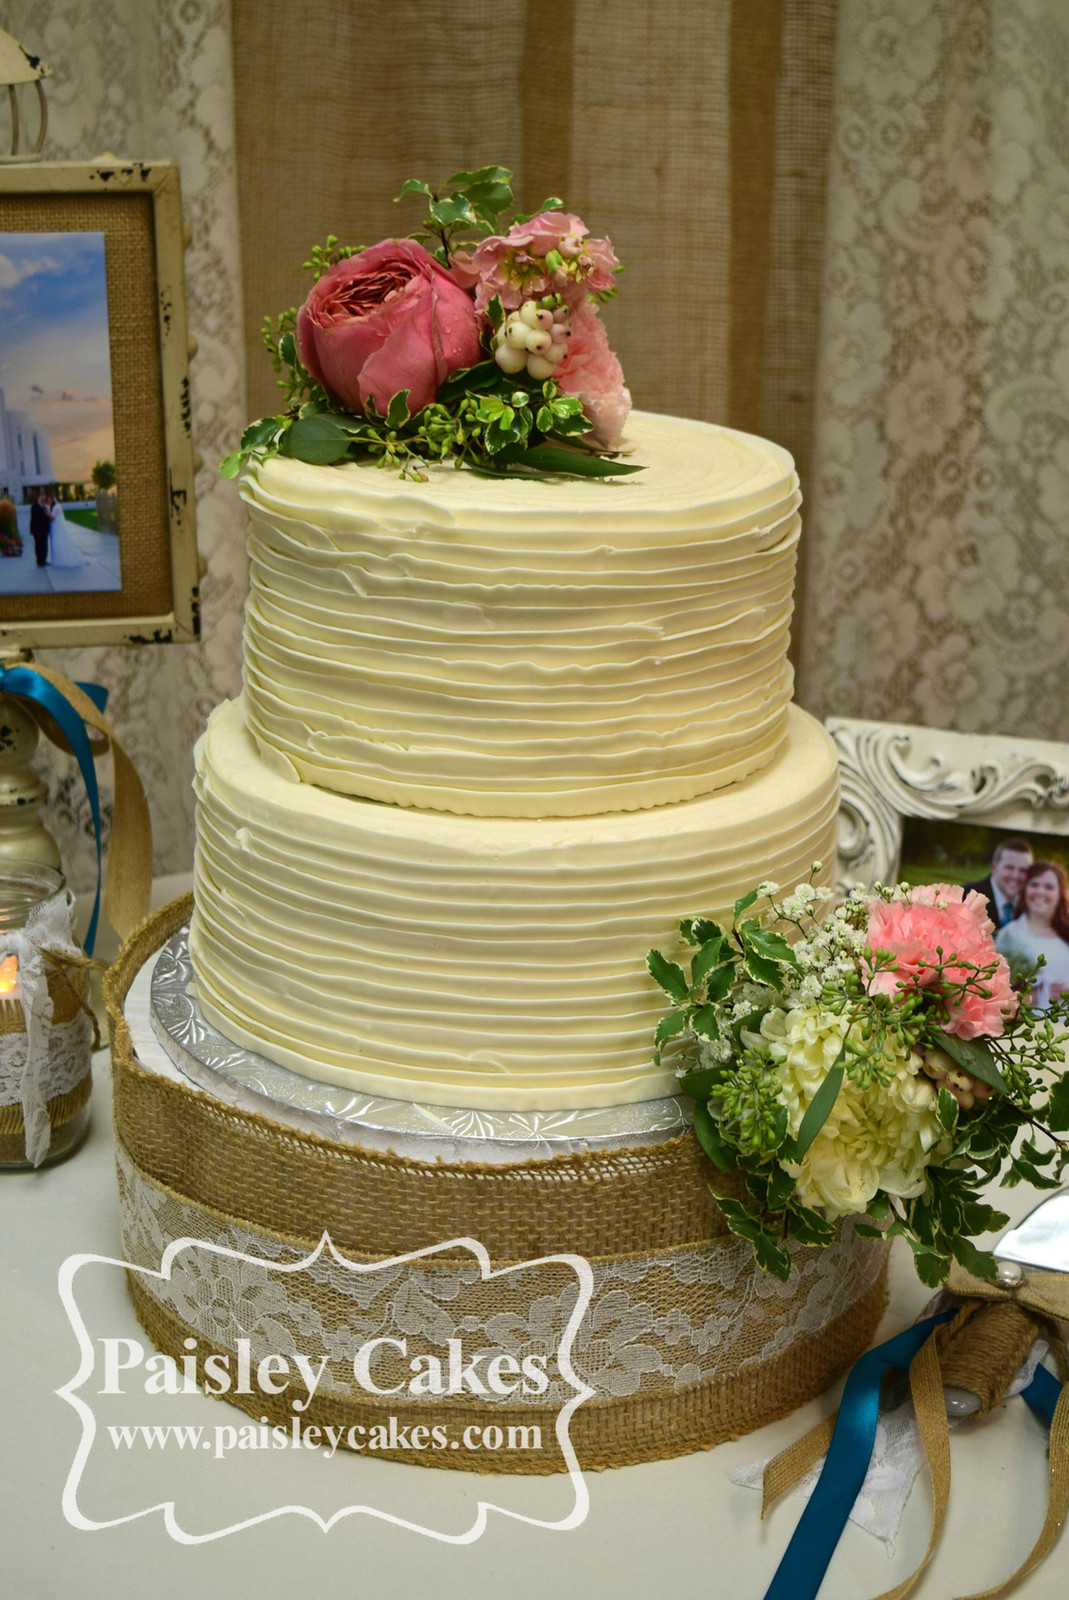 Wedding Cakes, Paisley Cakes, Blackfoot Idaho, Wedding desserts